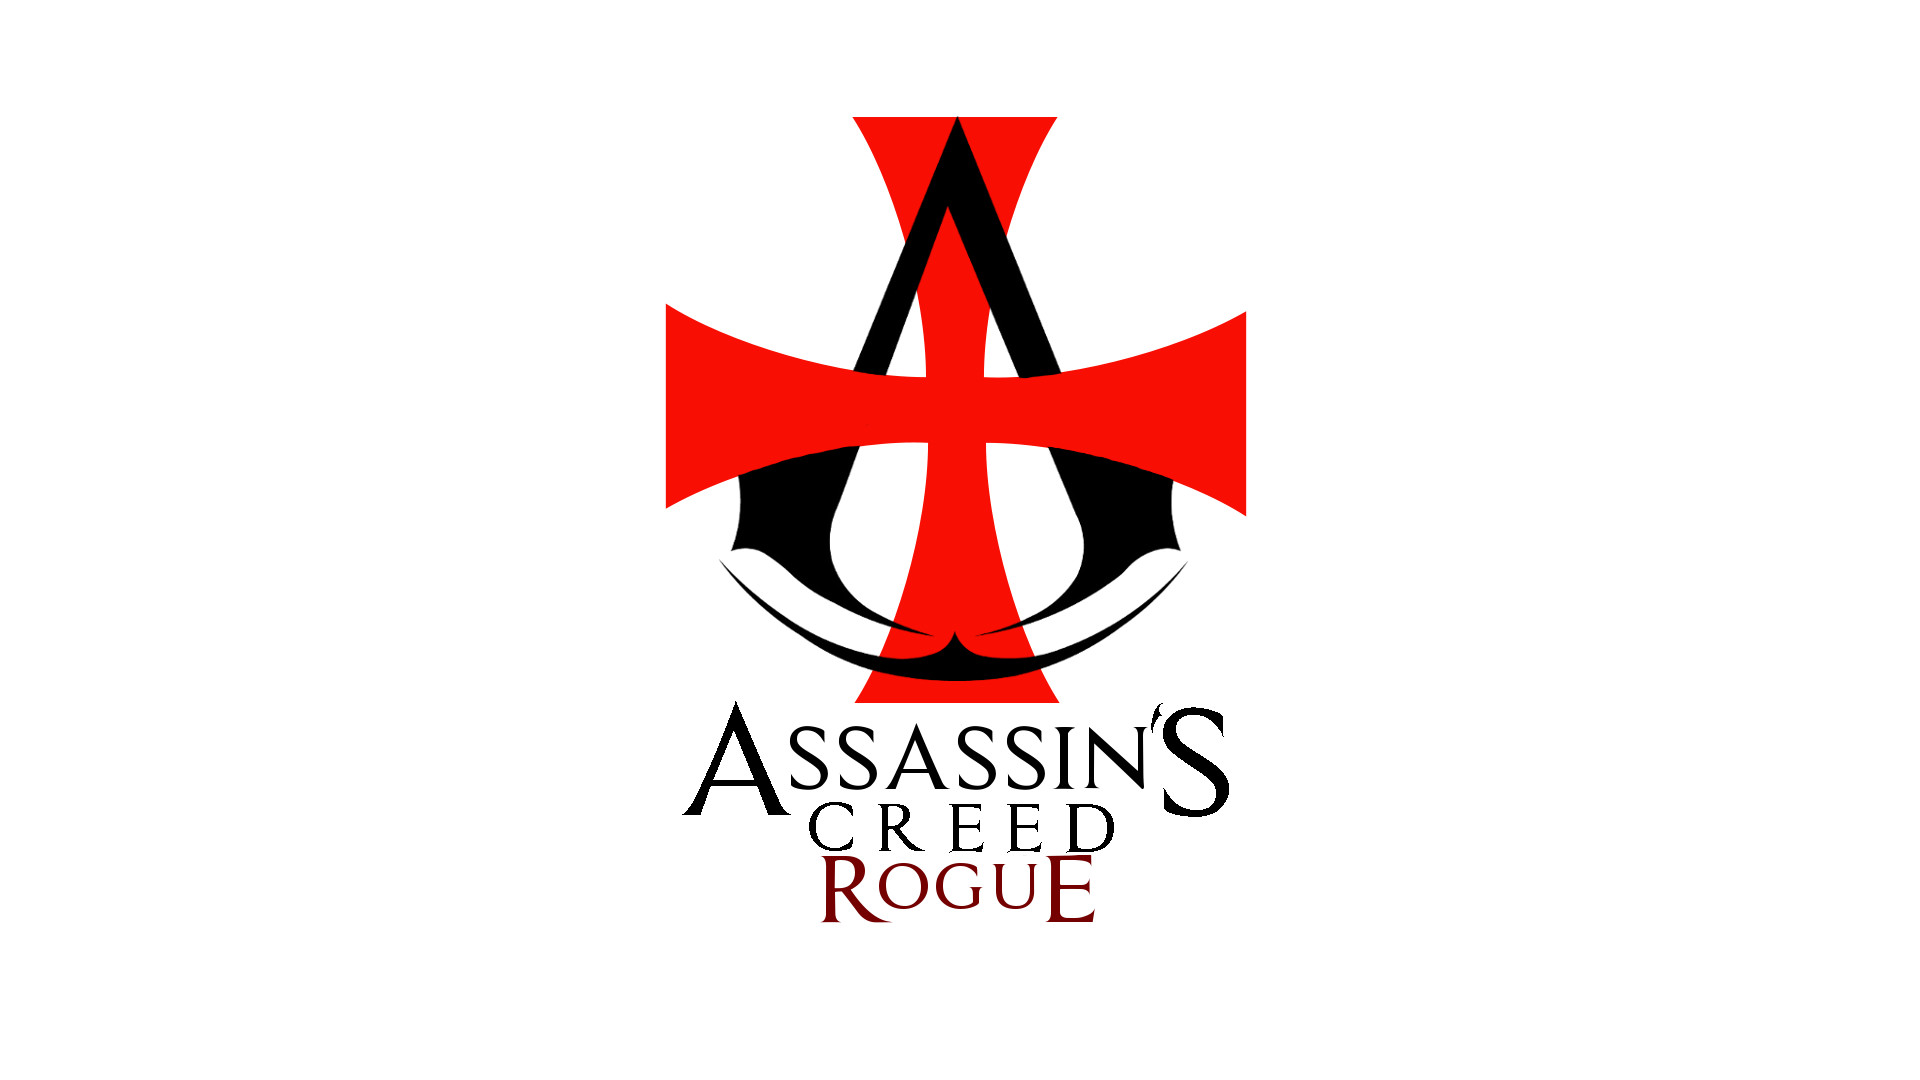 … Assassin's Creed Rogue Simple Wallpaper(my take) by TheJackMoriarty